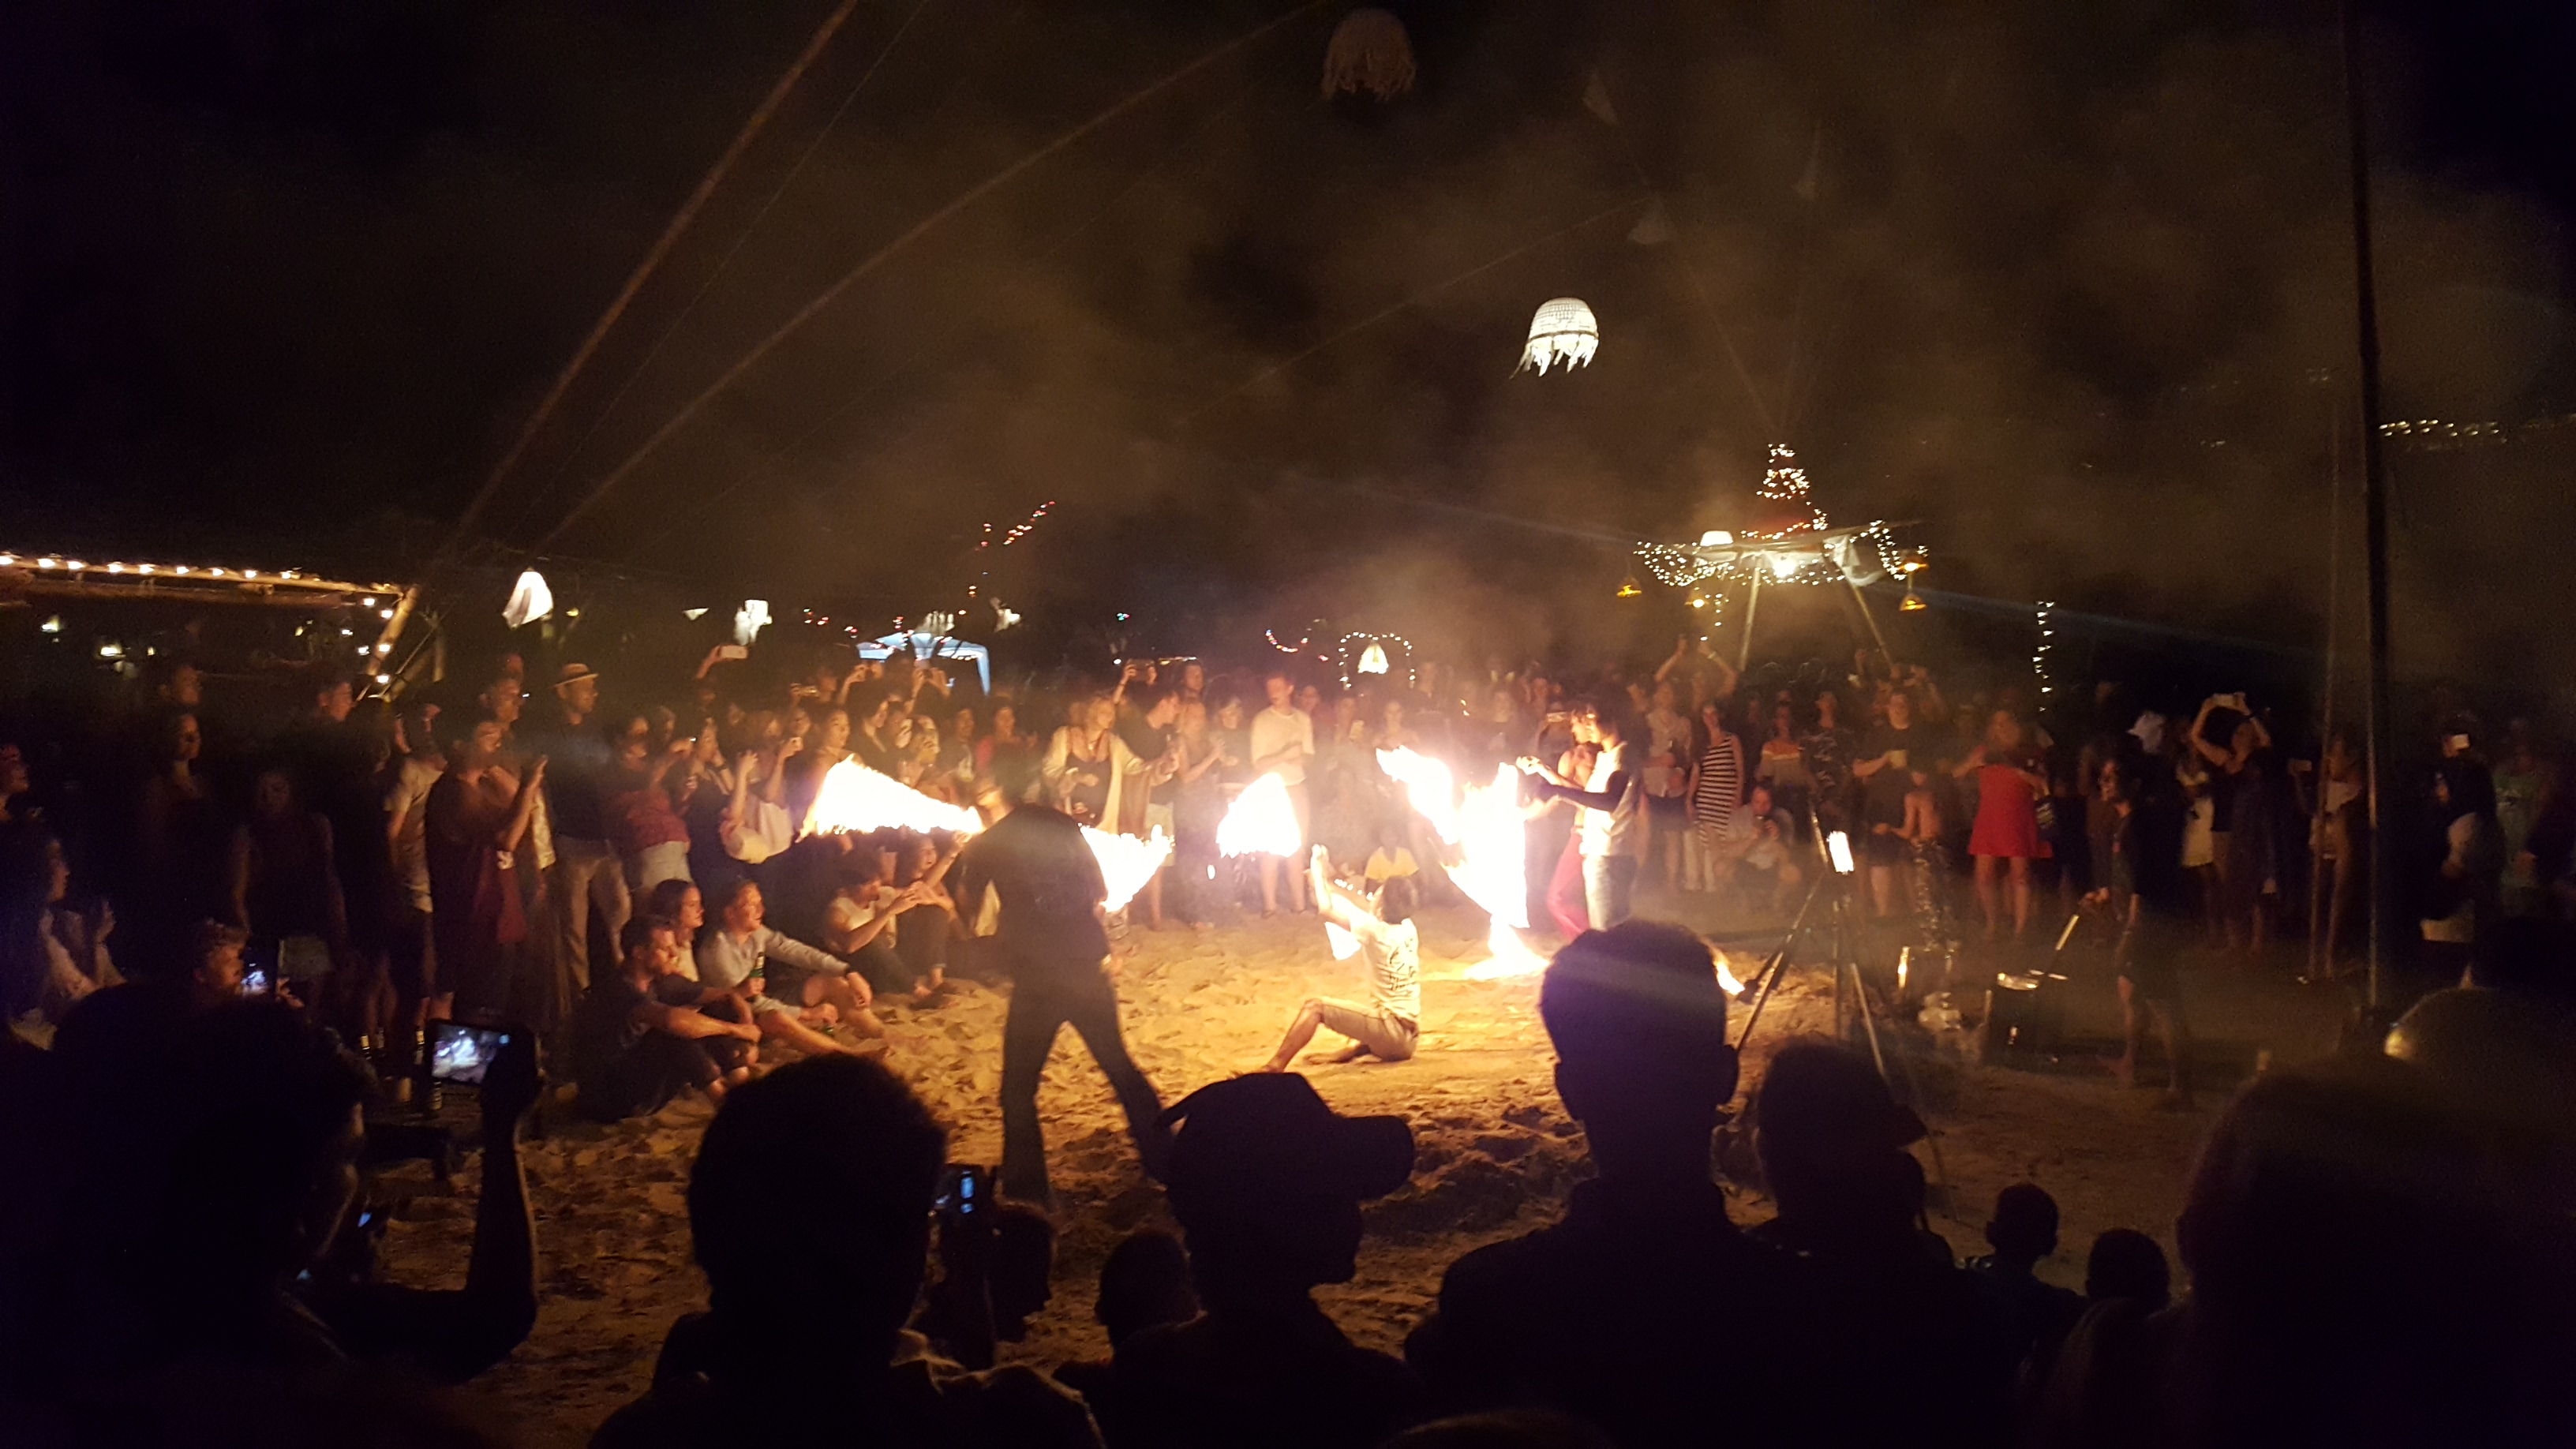 Three men juggle fiery batons on the beach after dark, surrounded by crowds